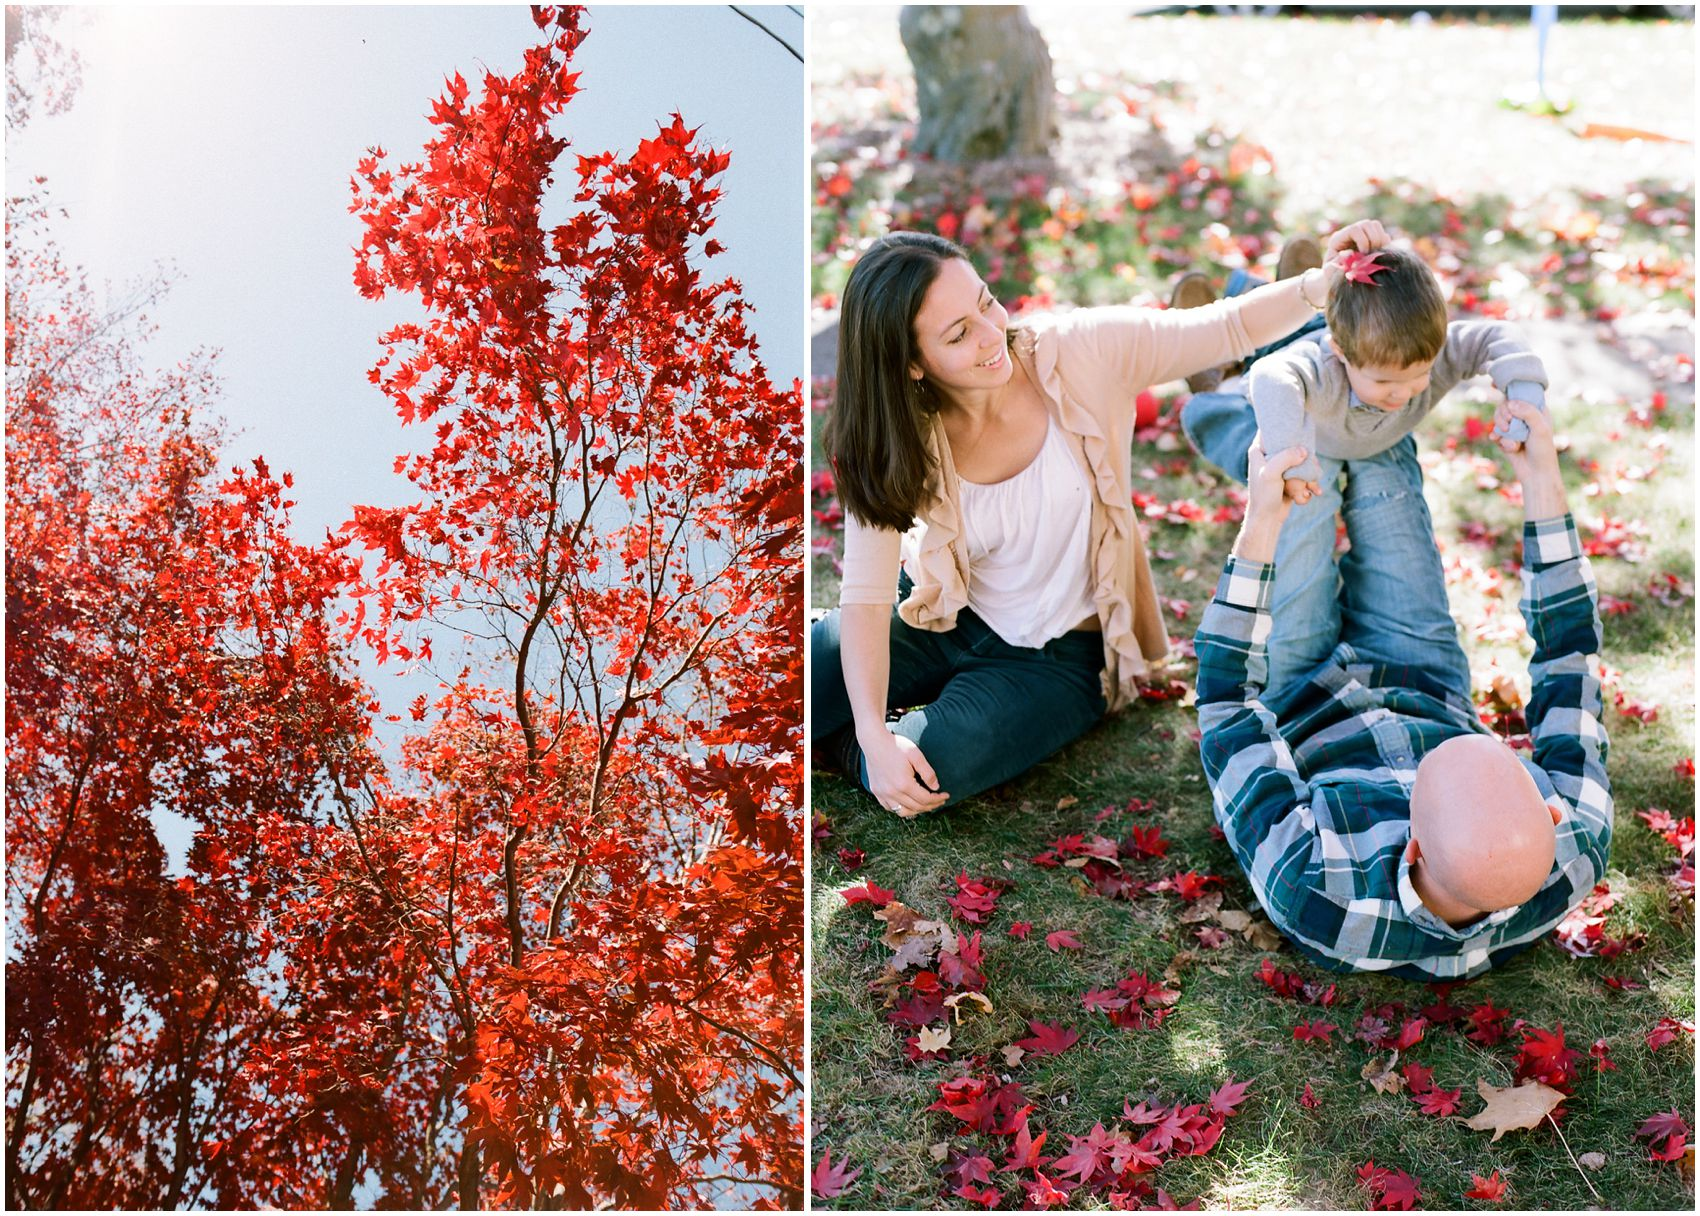 Family Photographer Miriam Dubinsky shares best location for fall family portraits with parens having fun on the ground with leaves